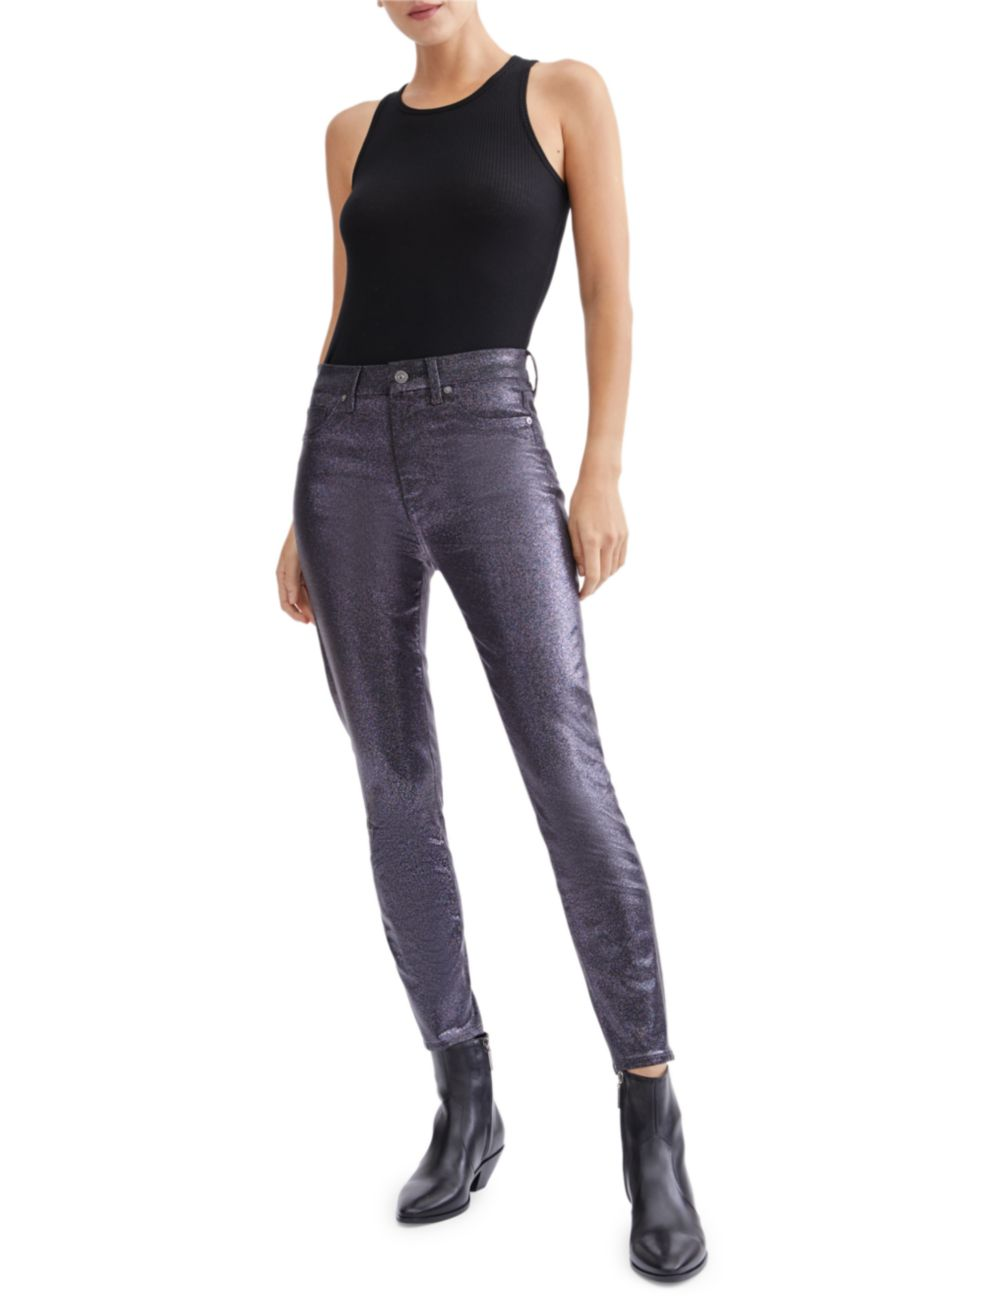 7 For All Mankind Sparkle Coated High-Rise Ankle Skinny Jeans   SaksFifthAvenue